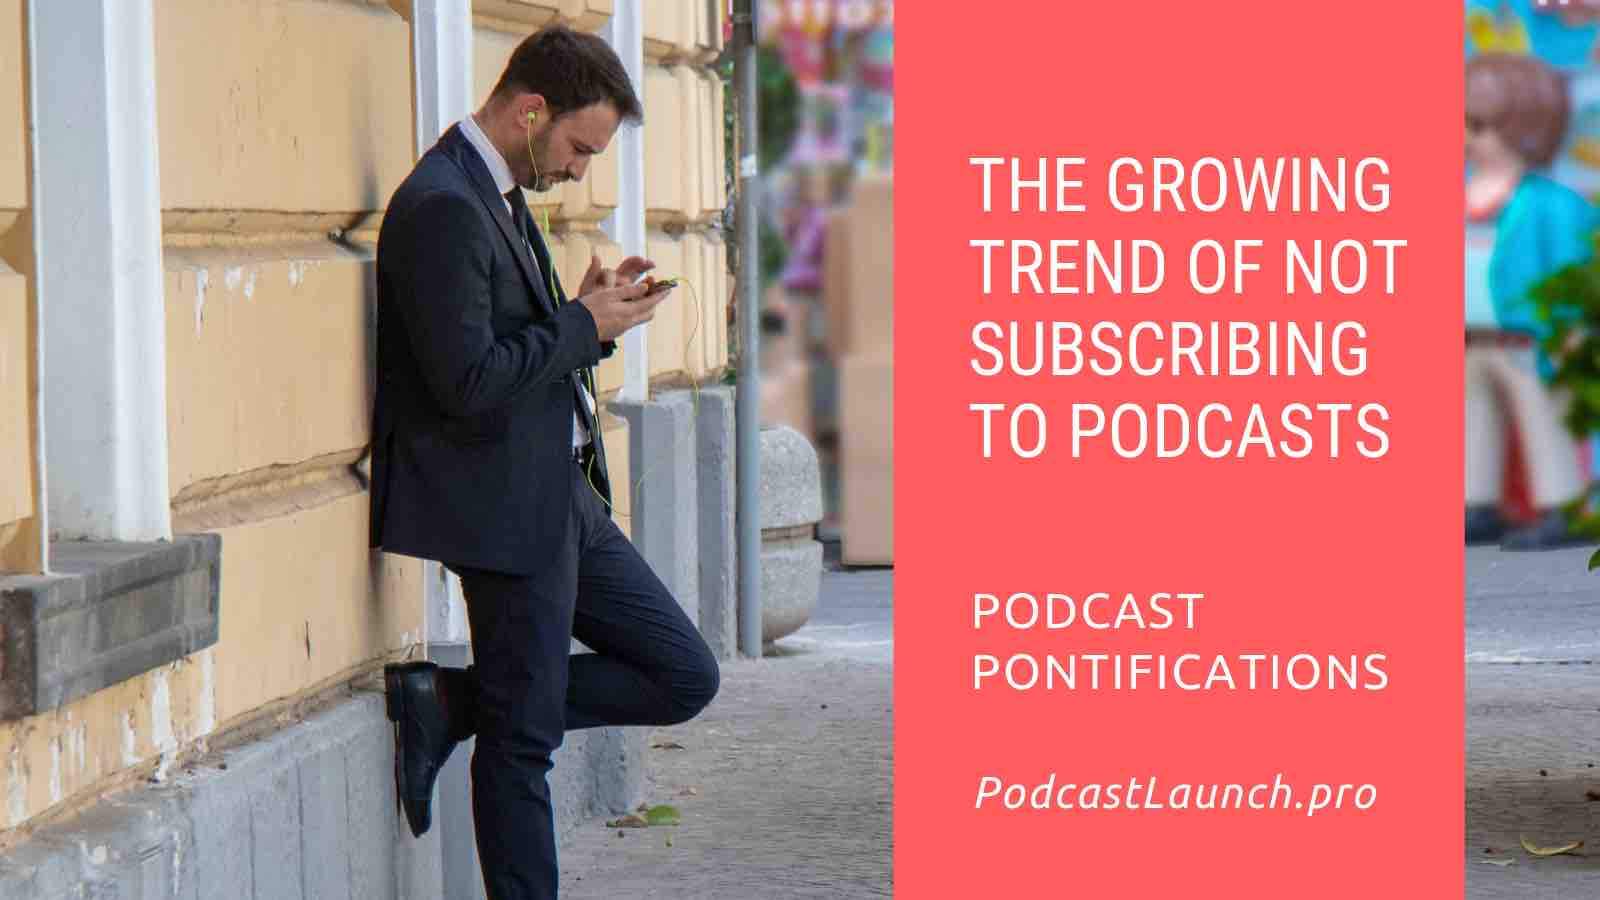 The Growing Trend Of Not Subscribing To Podcasts